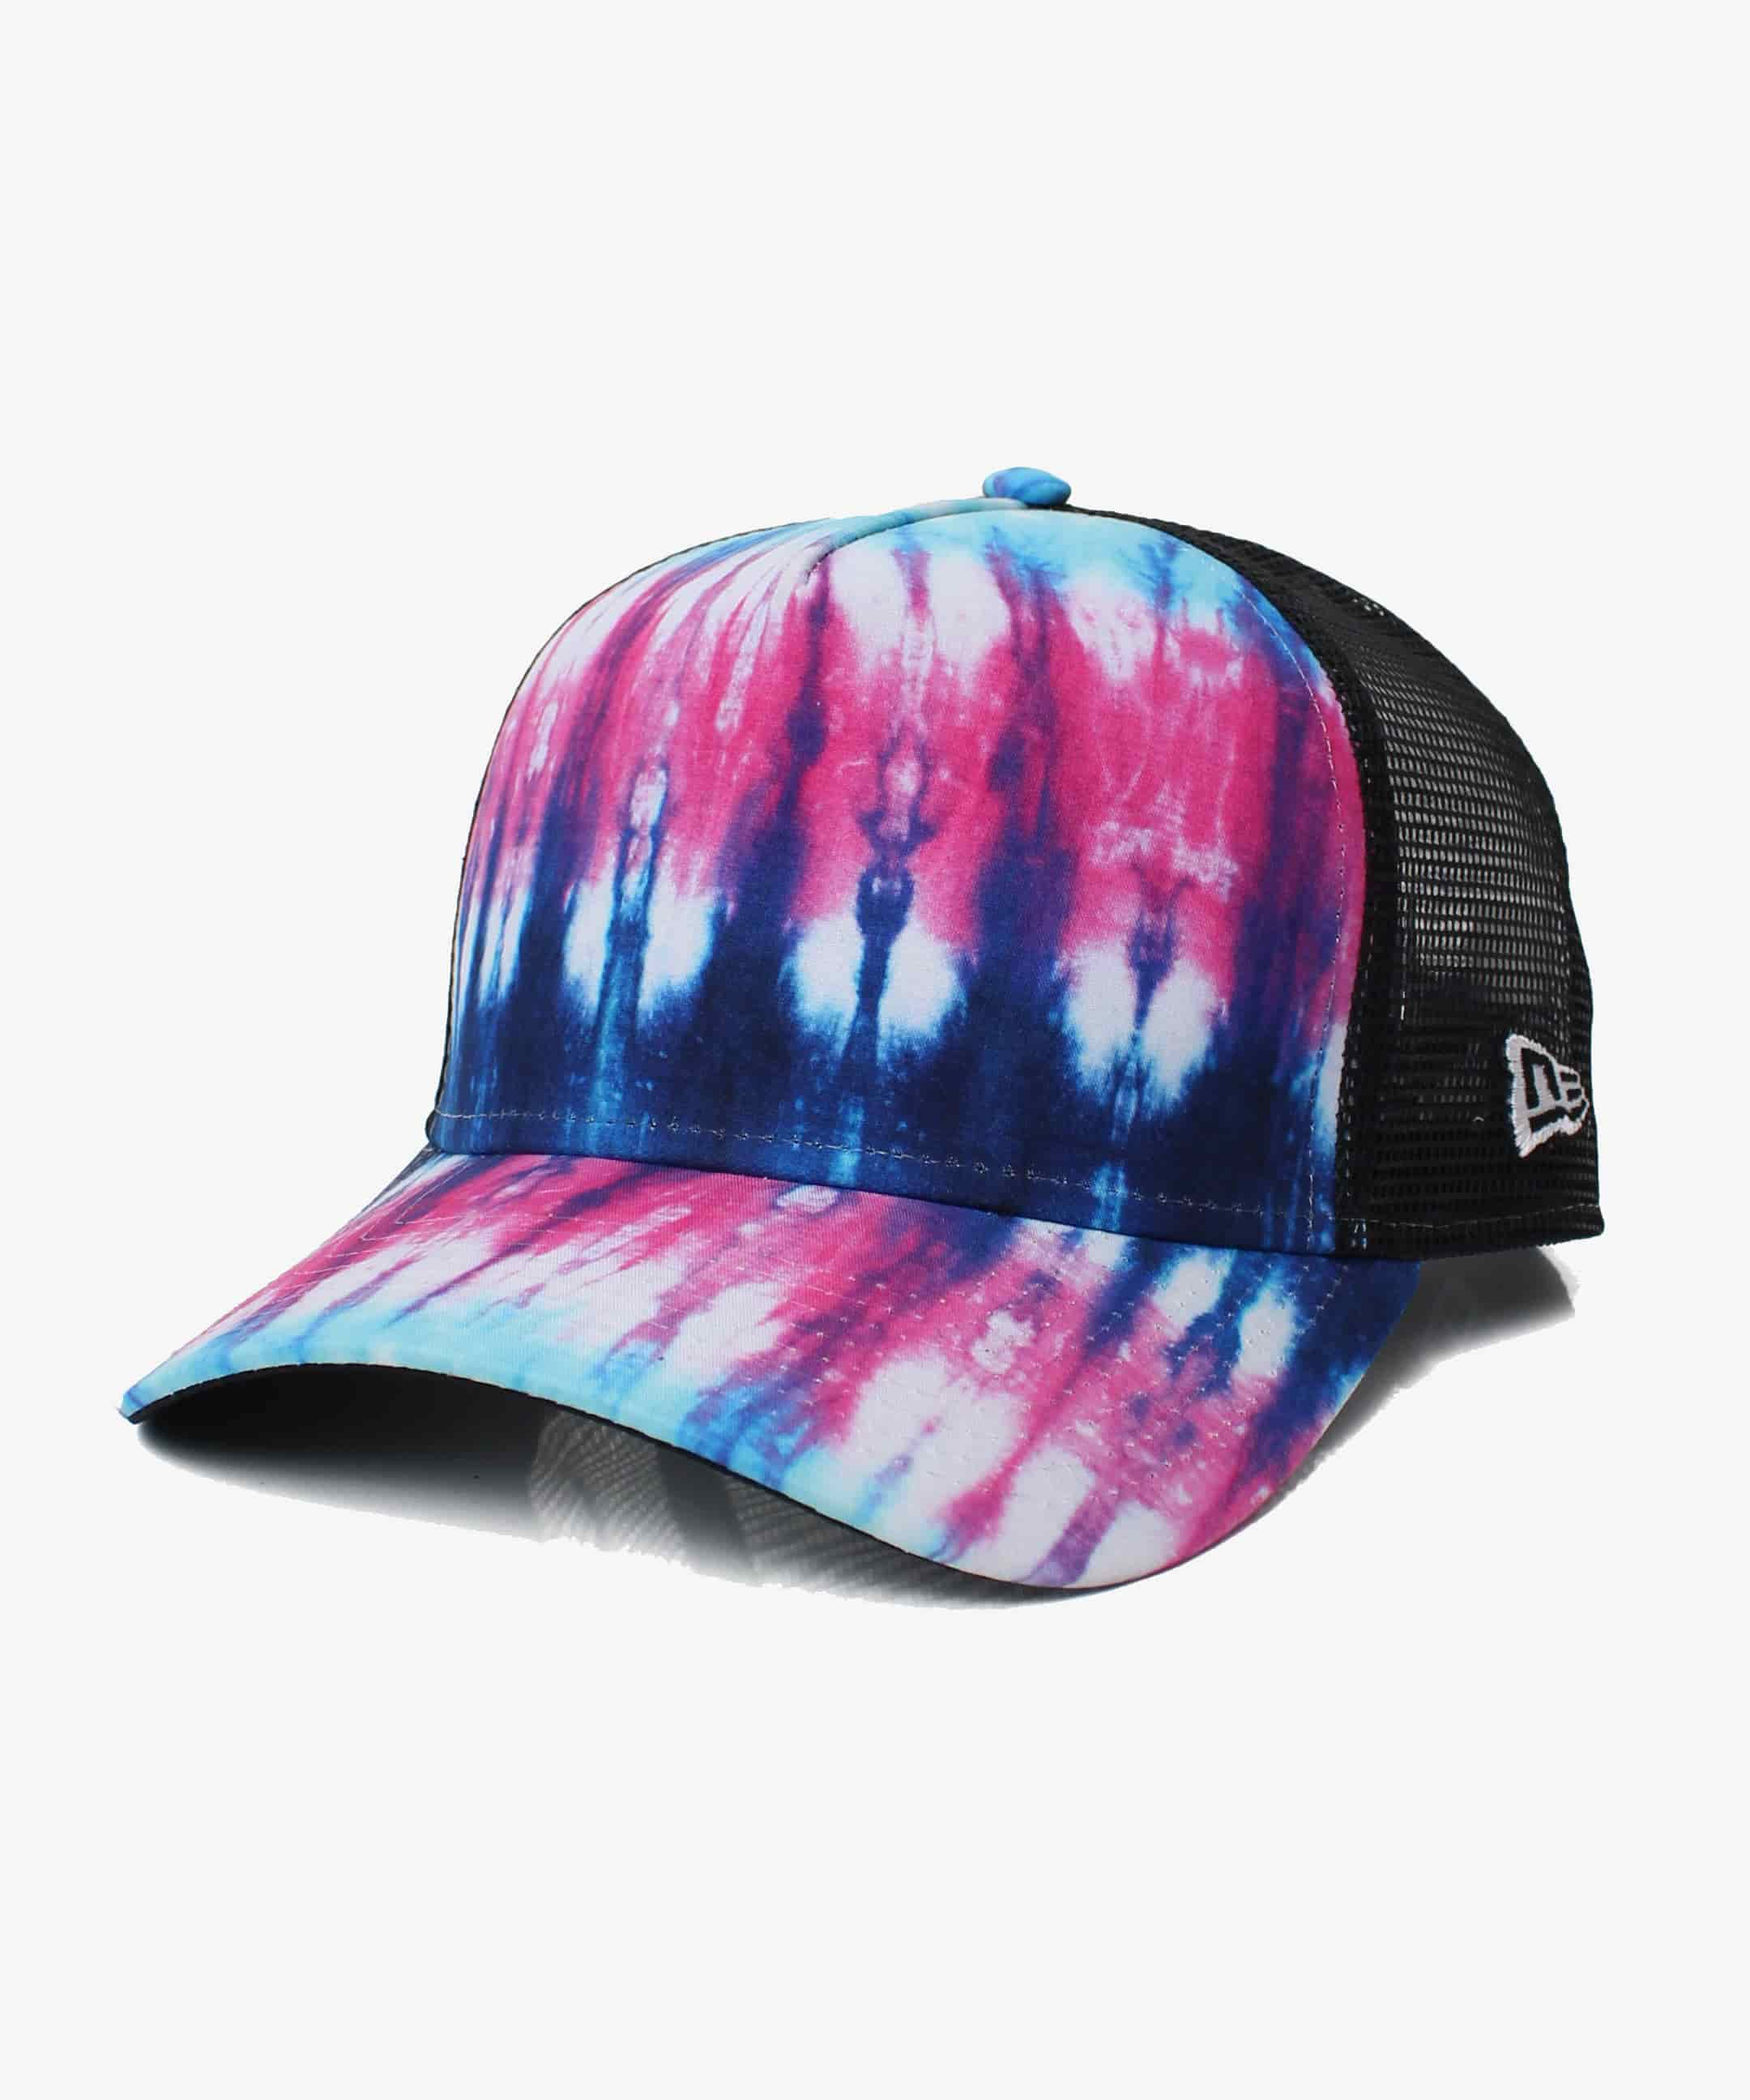 【☆】 NEW ERA 940 TIEDYE